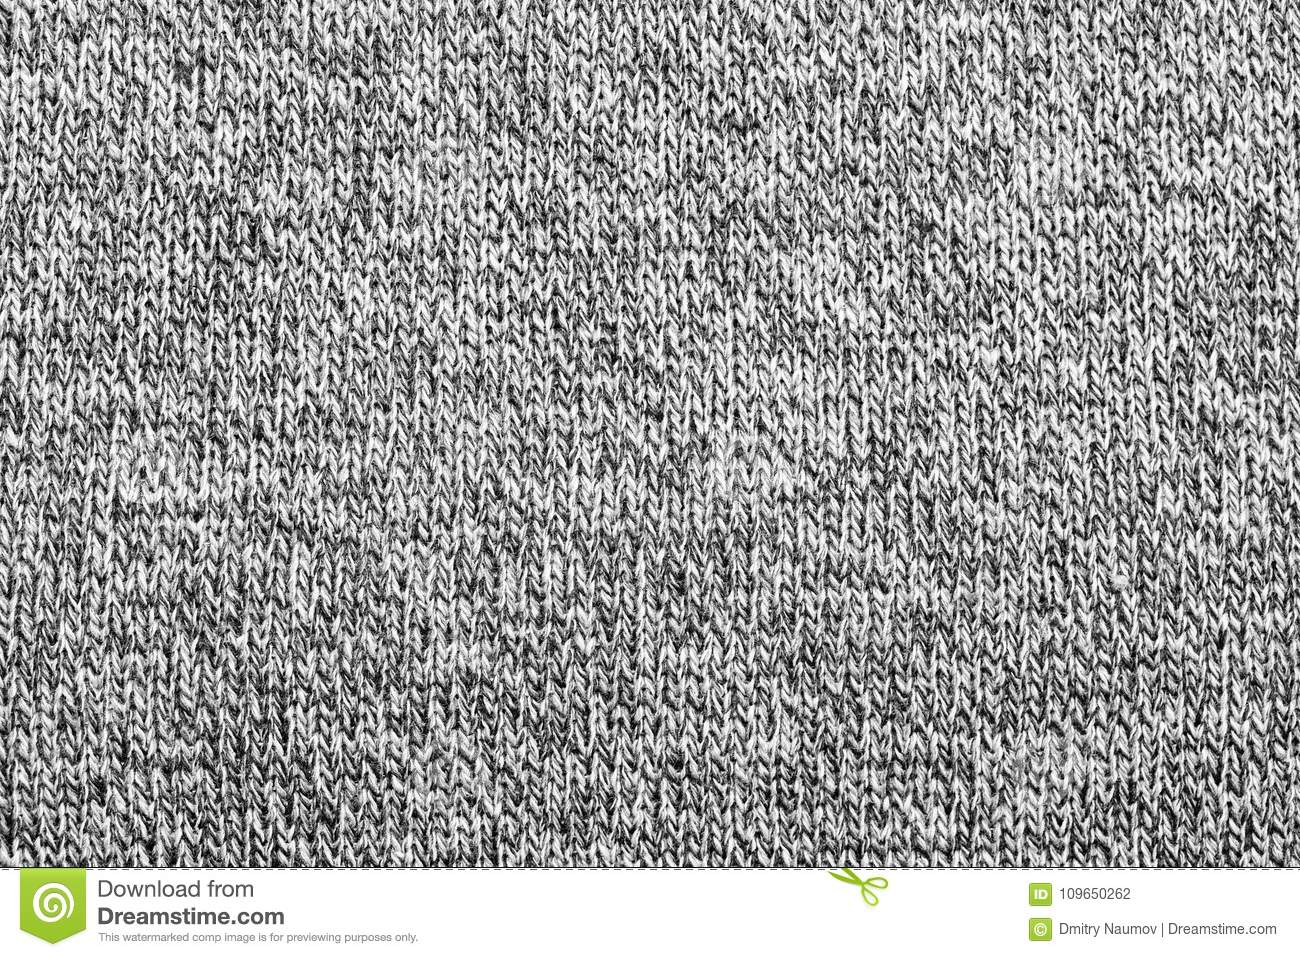 e4d0dca06f0 Grey melange knitted fabric made of heather mixed yarn textured background